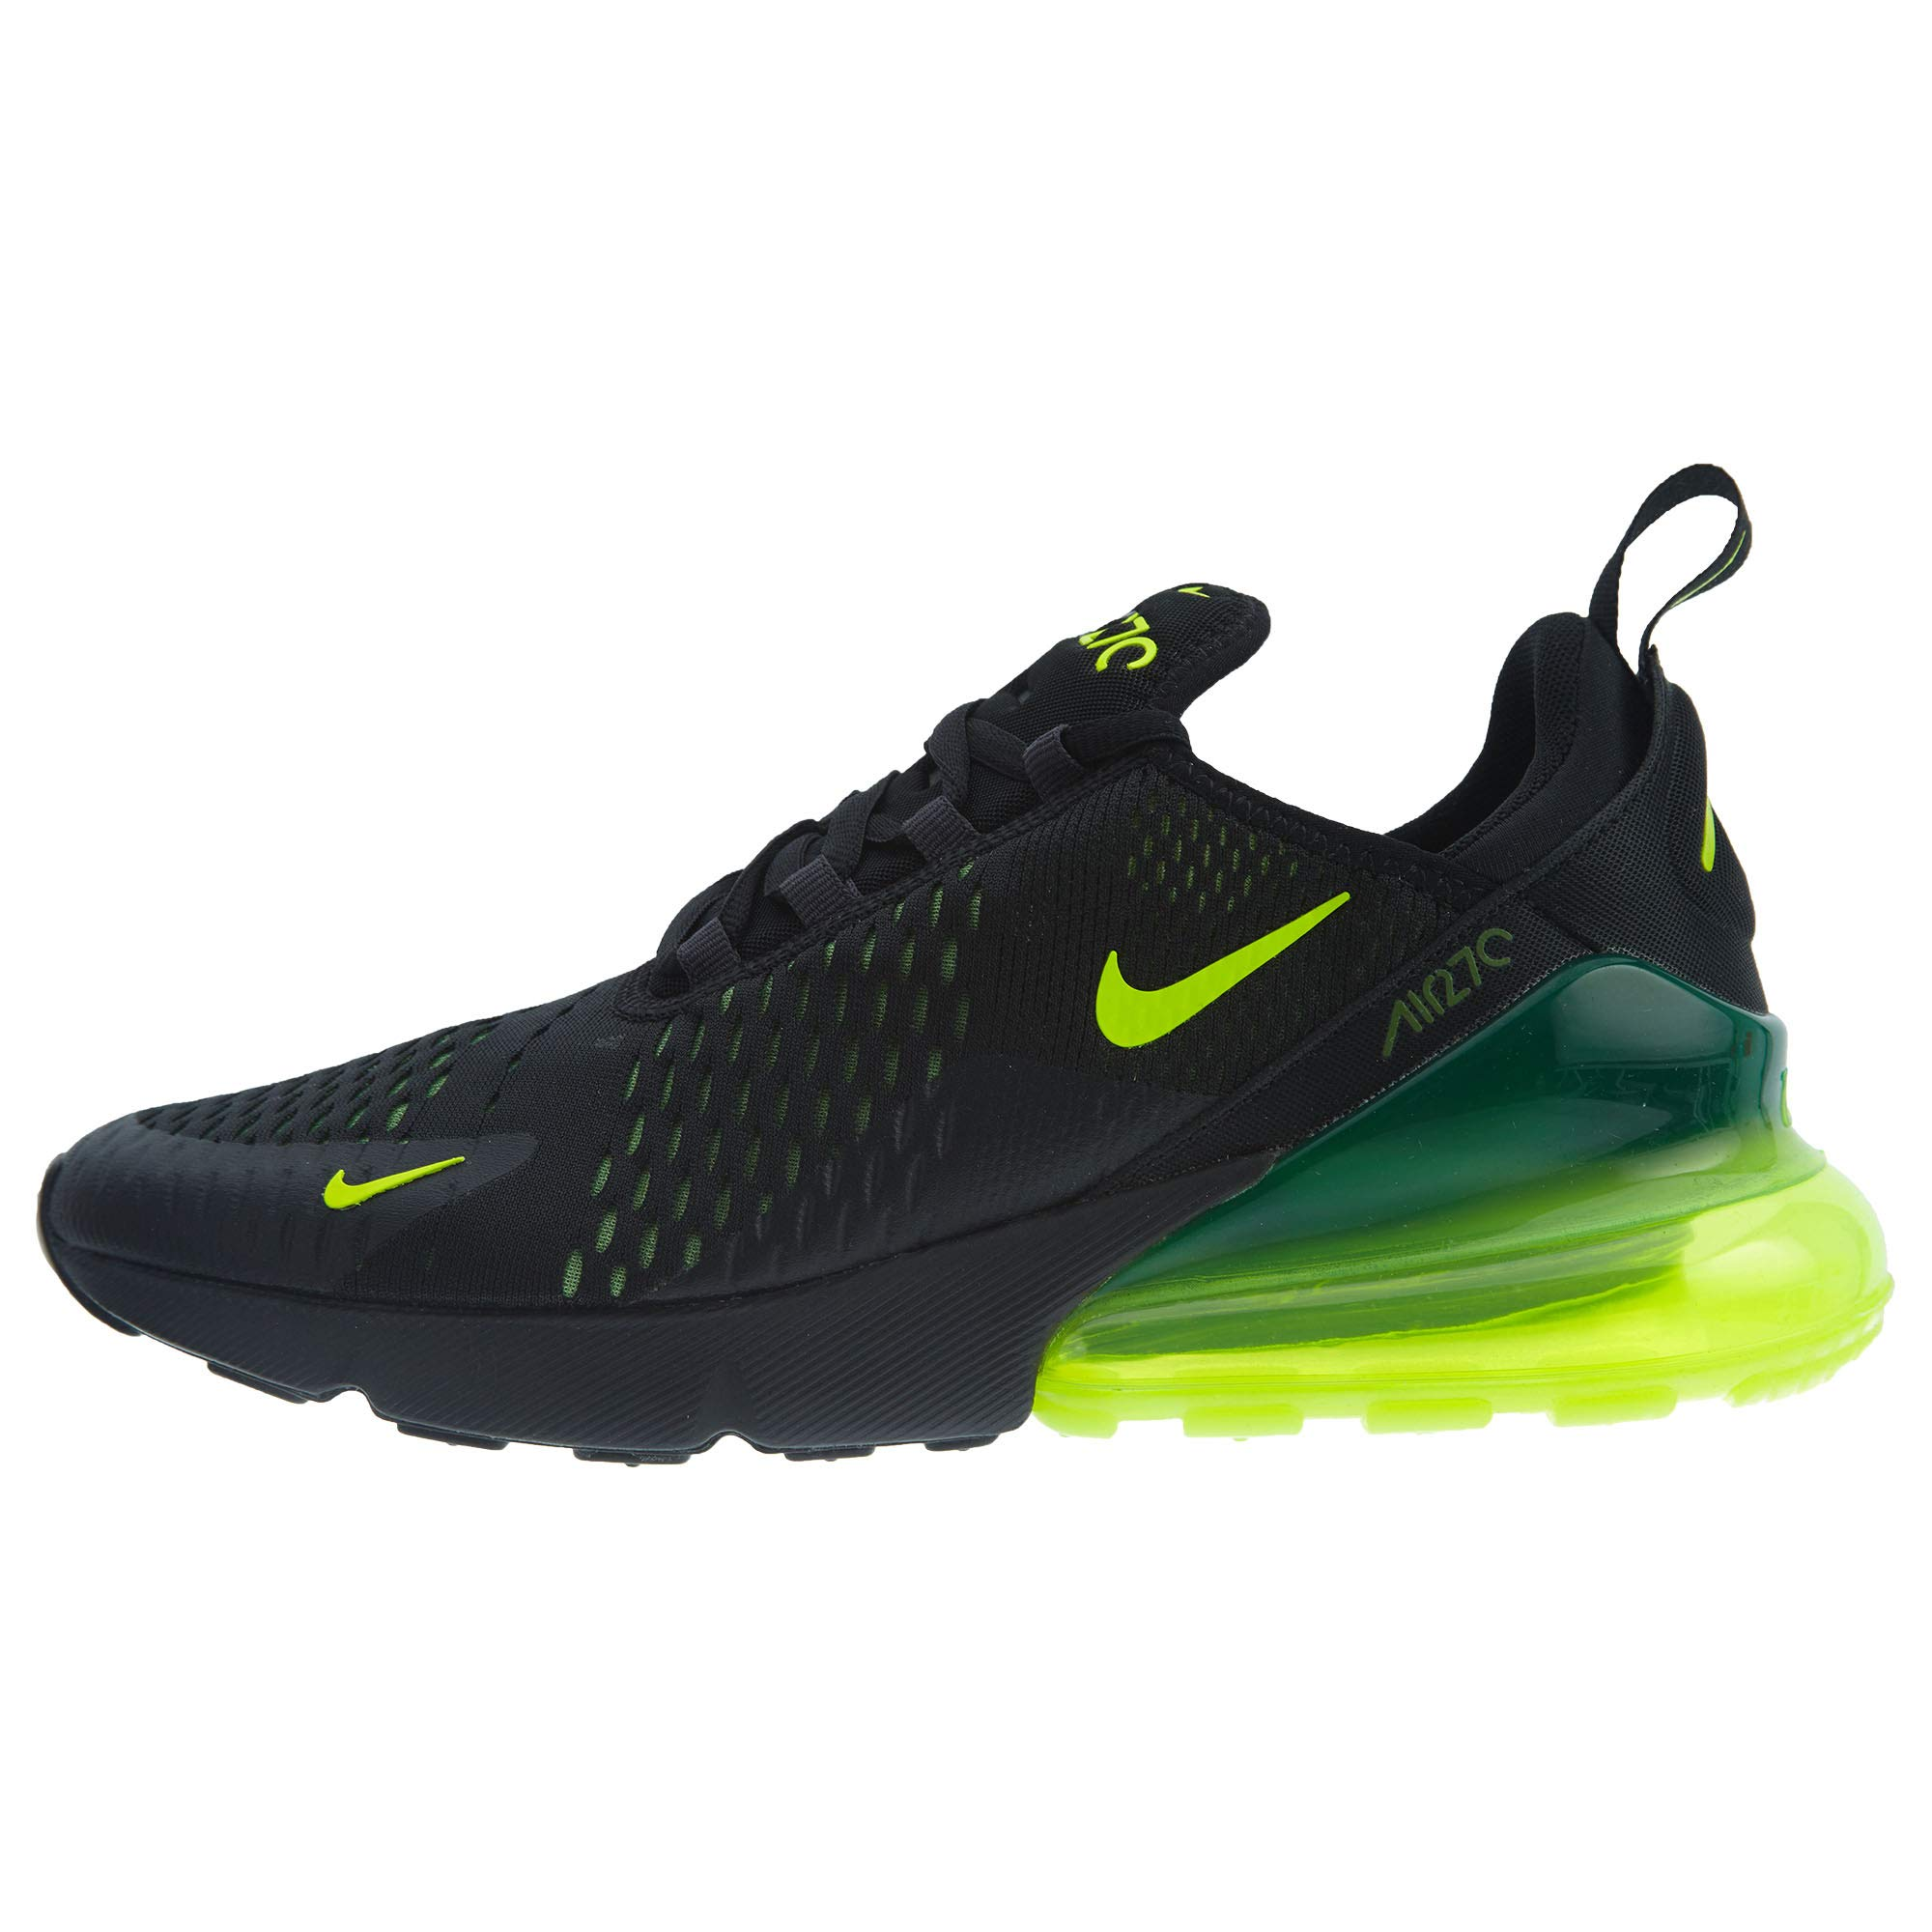 0d5edbbcc69c98 Galleon - Nike Mens Air Max 270 Lifestyle Sneakers (9.5 D(M) US)